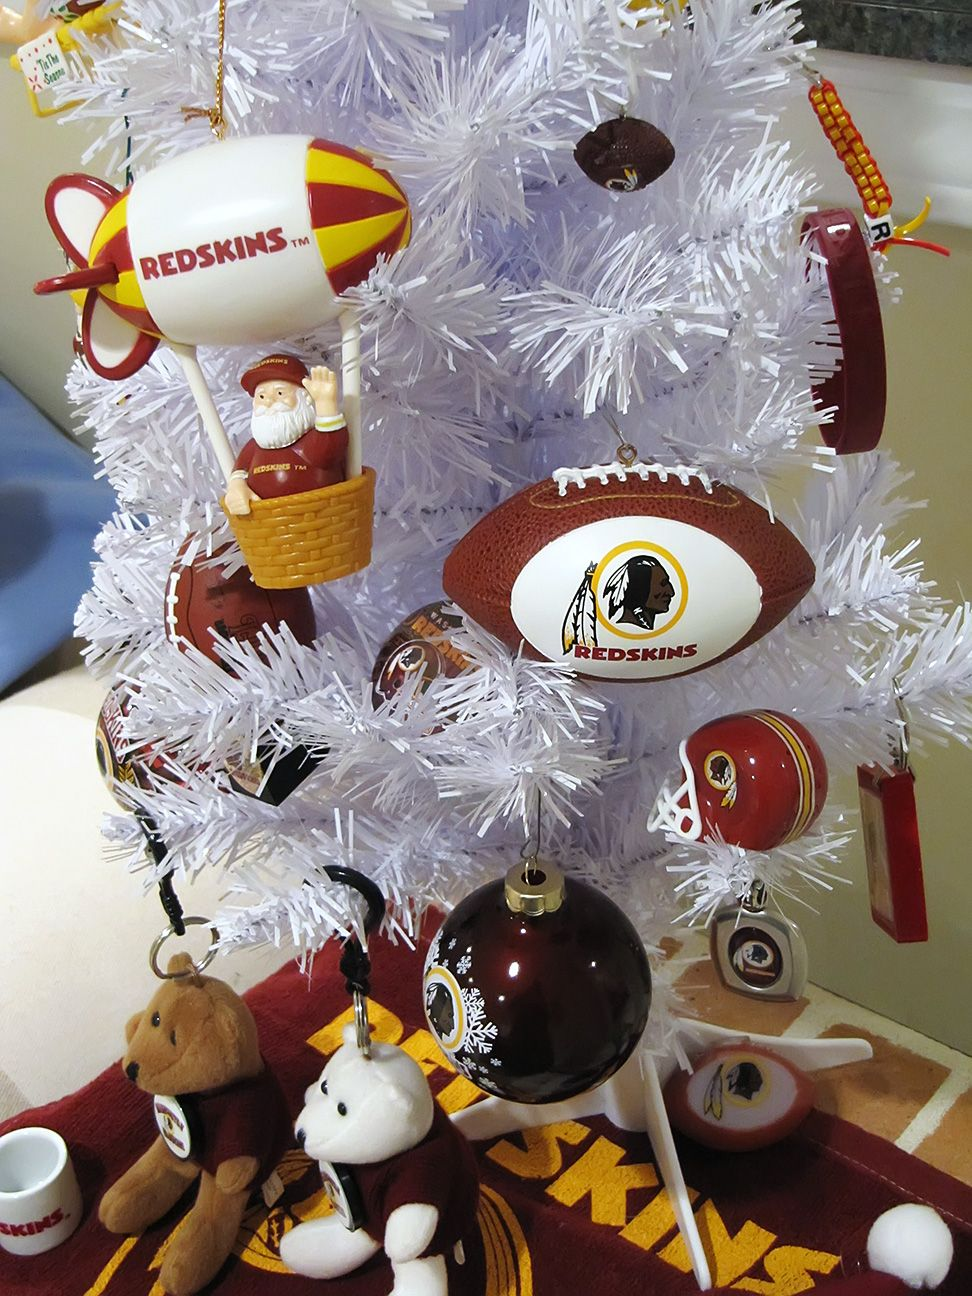 Redskins Christmas Tree | Sports Holiday Decorations | Pinterest ...